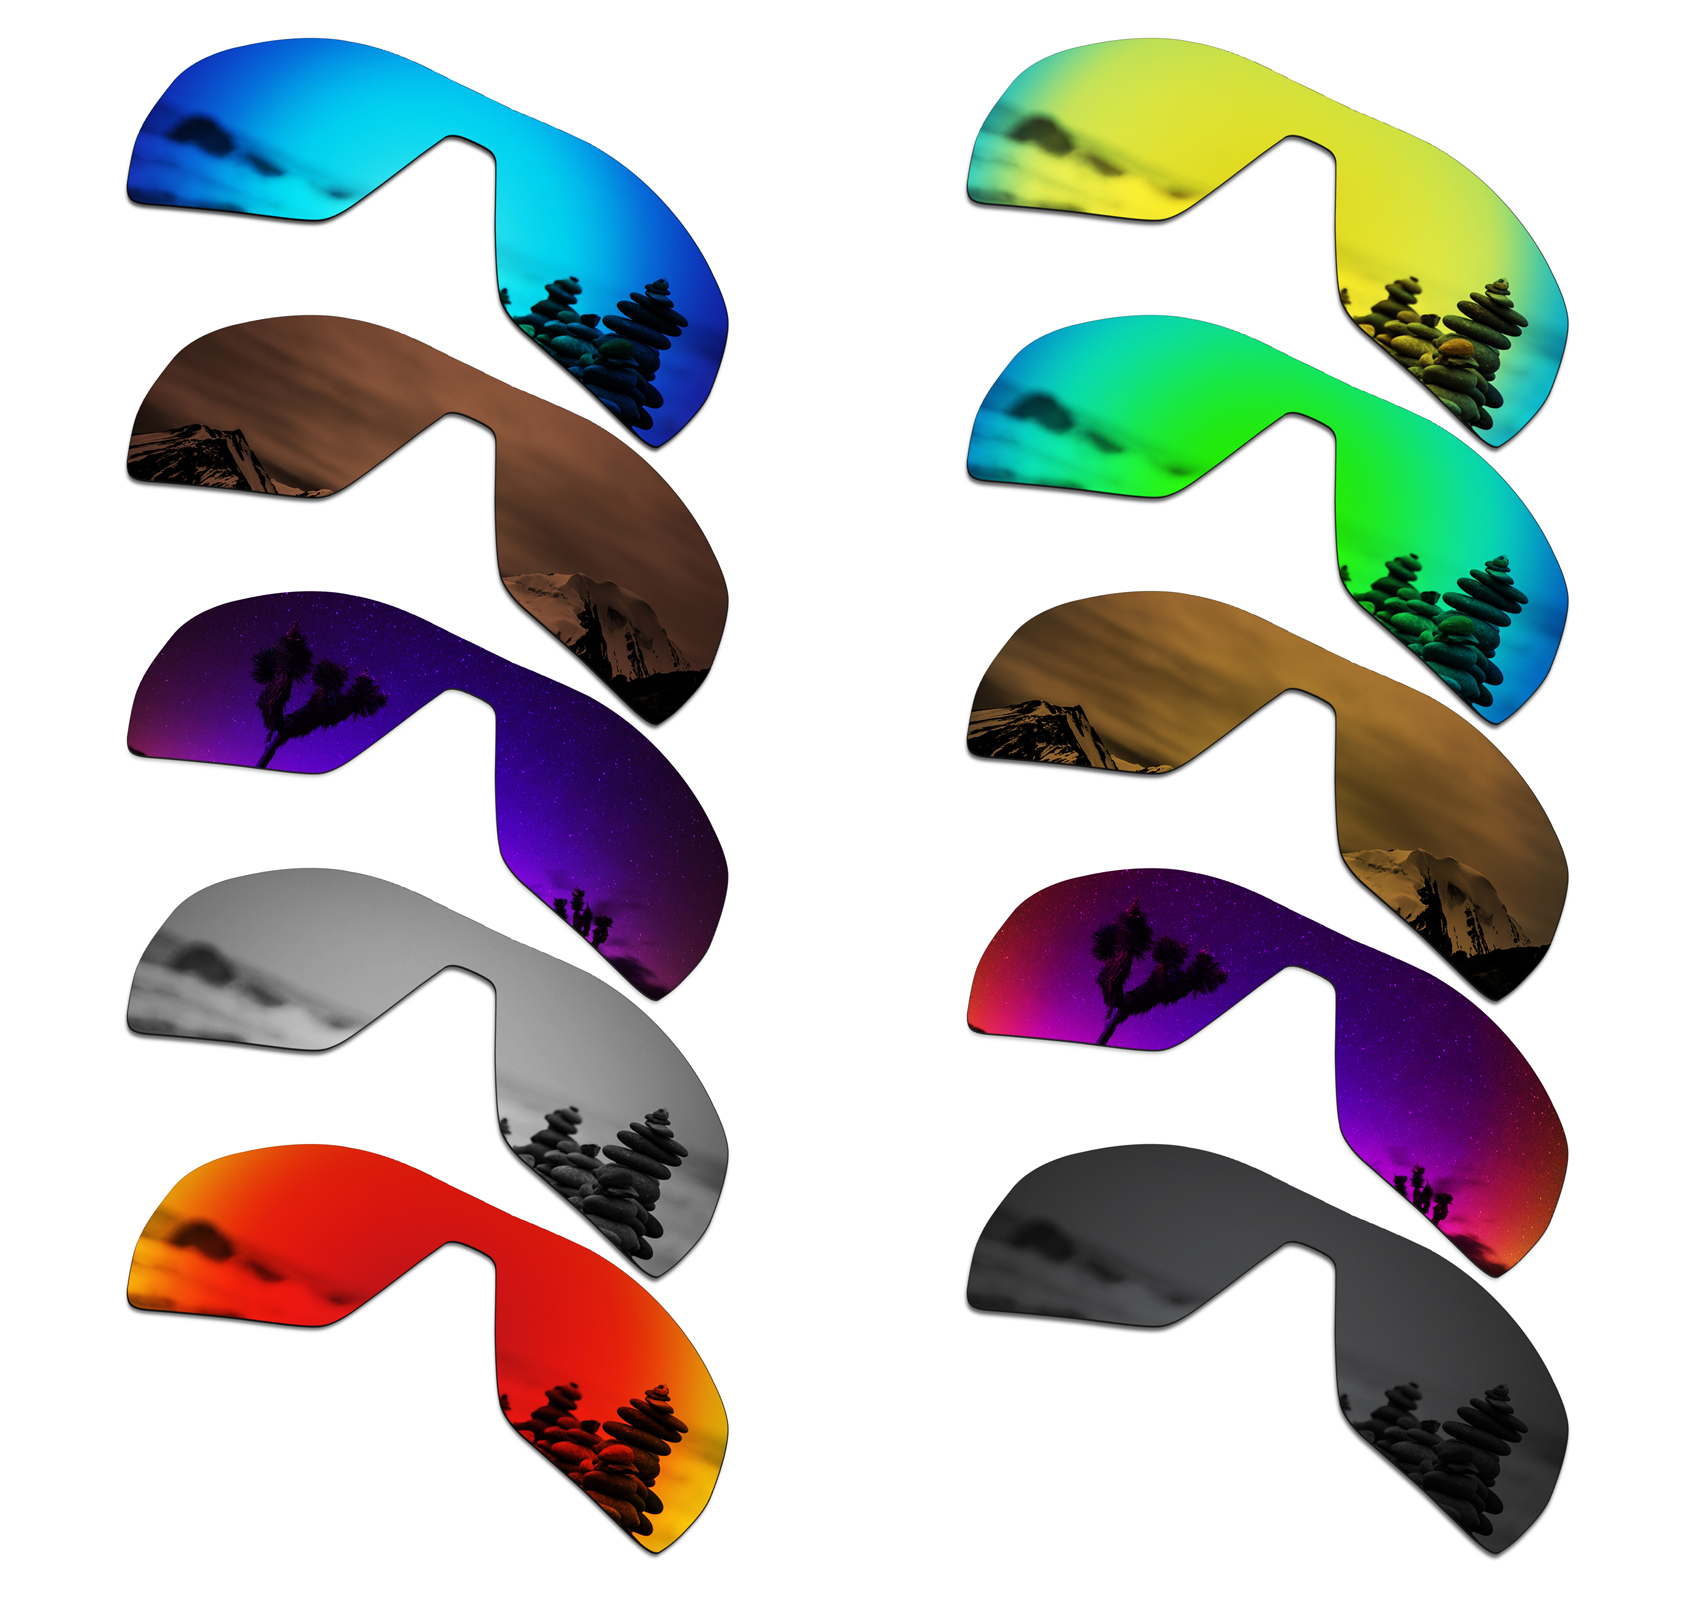 SmartVLT Polarized Replacement Lenses For Oakley Offshoot Sunglasses - Multiple Options